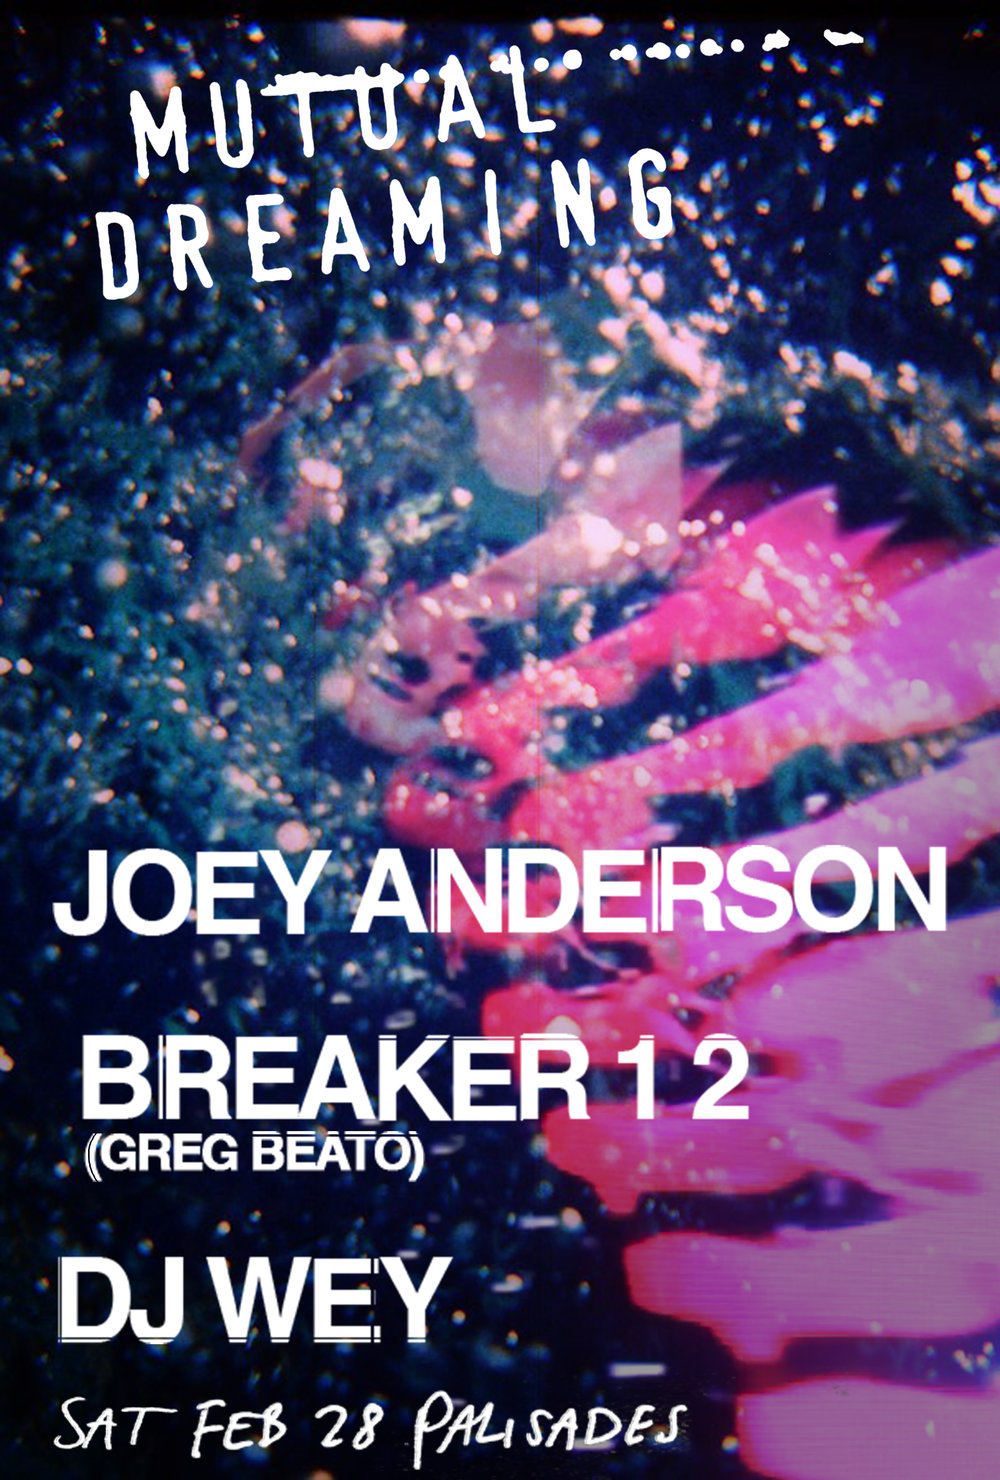 Mutual Dreaming: Joey Anderson, Breaker 1 2 (Greg Beato), DJ Wey  2015